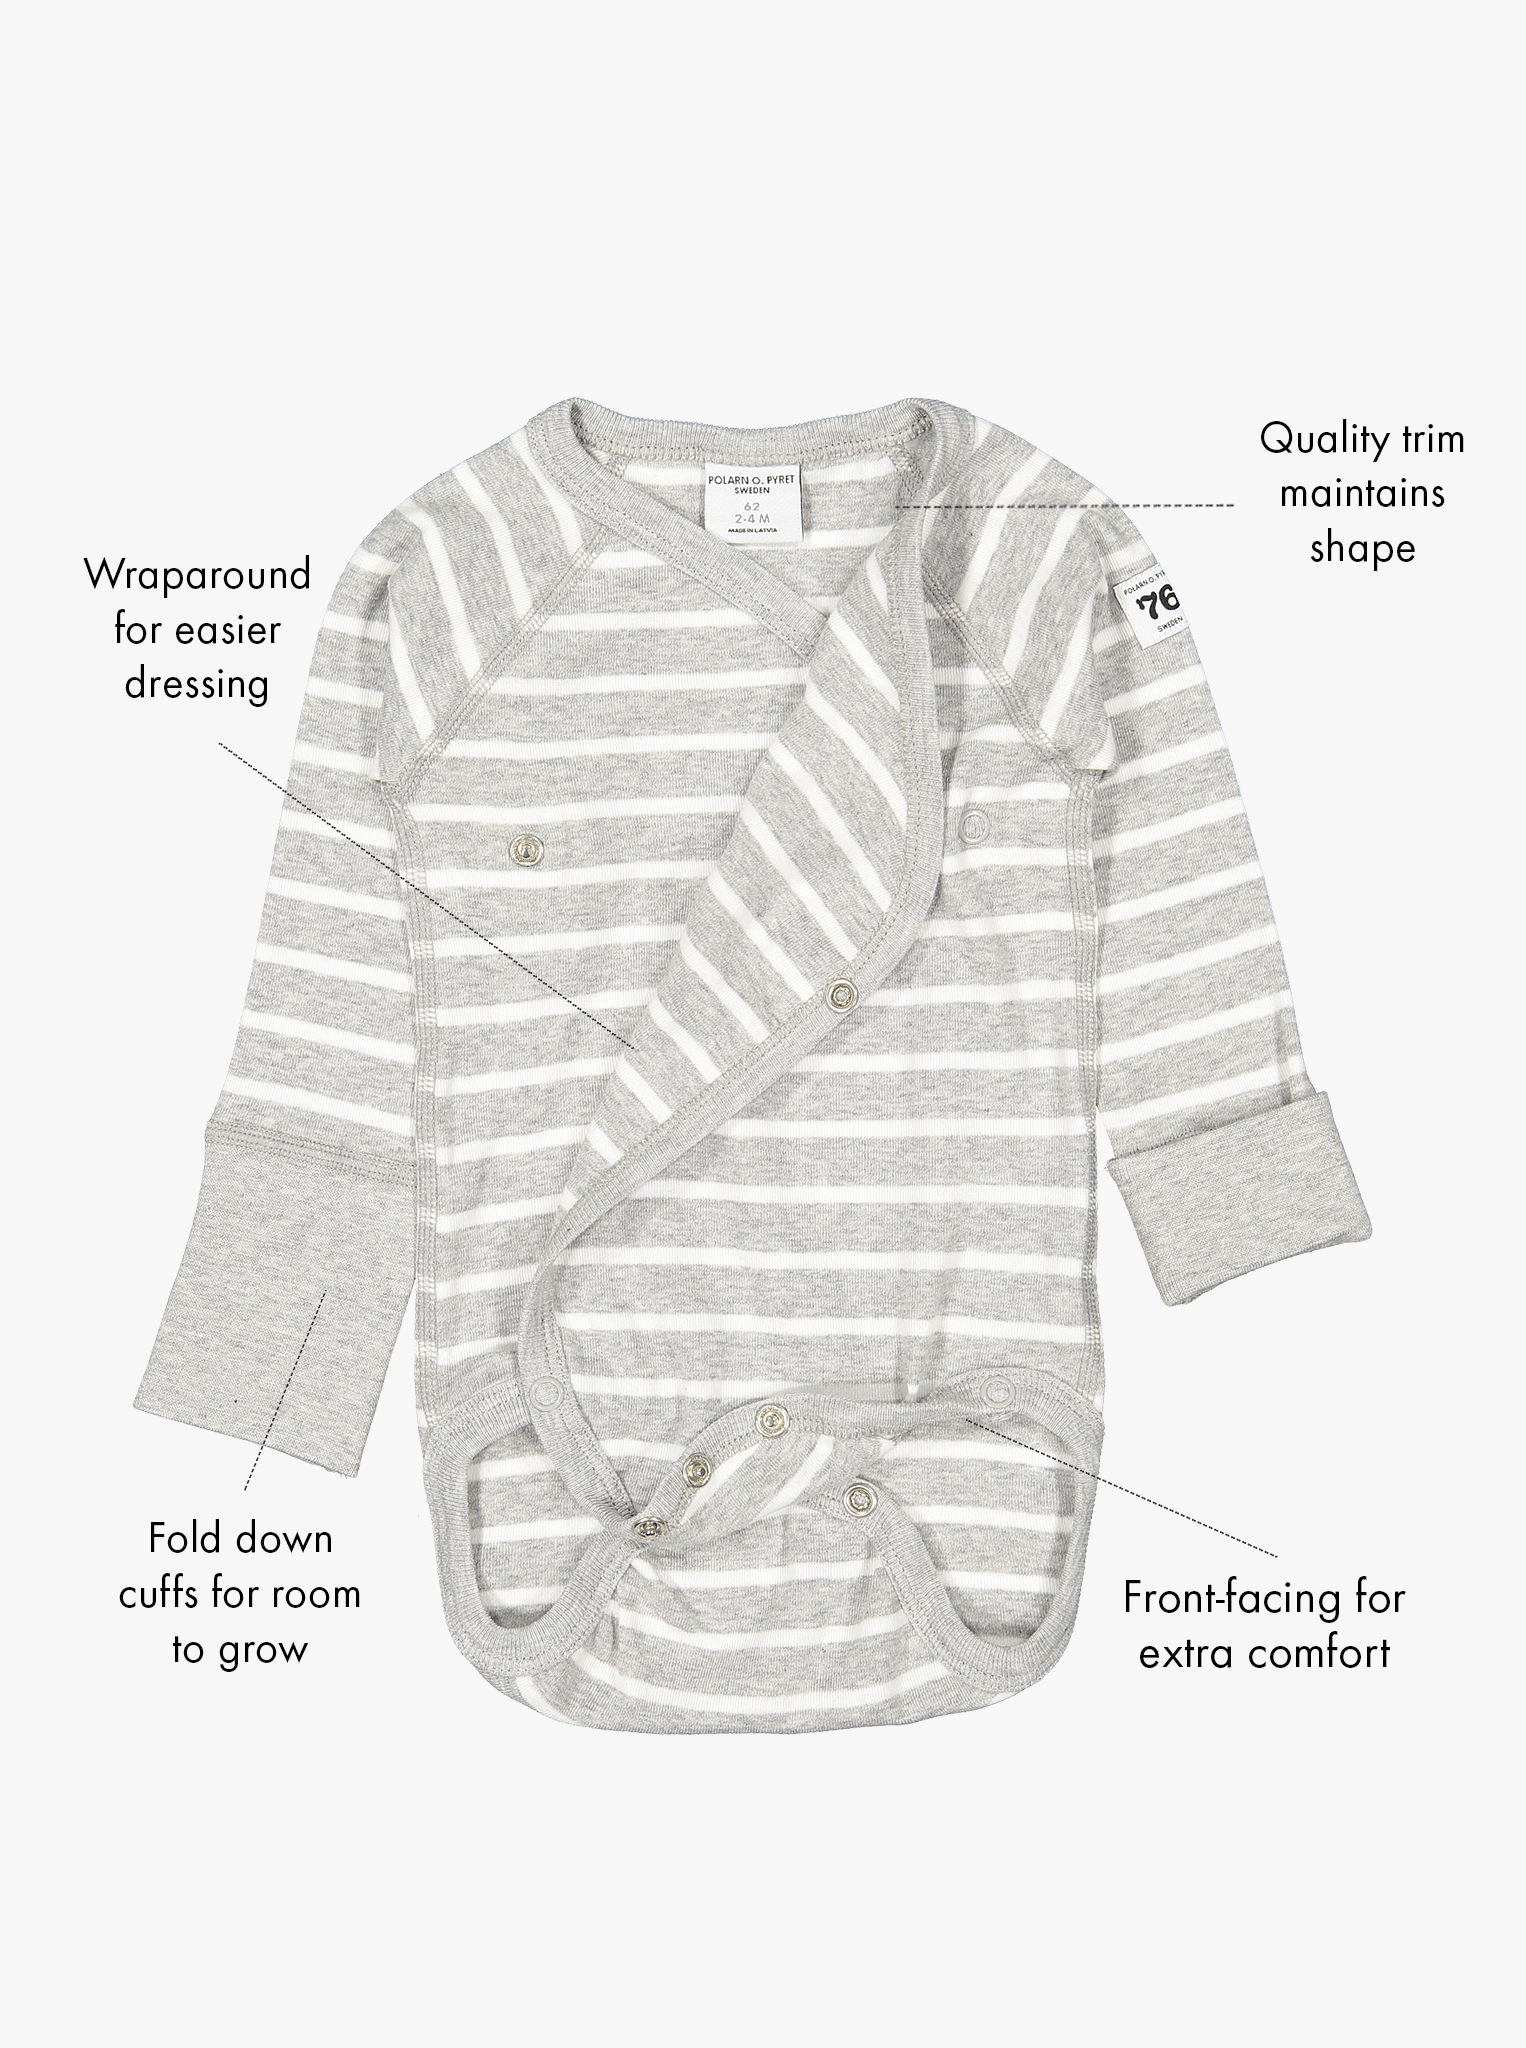 White and grey striped wrap around babygrow for preterm newborn babies, with labels showing the babygrow's special features.